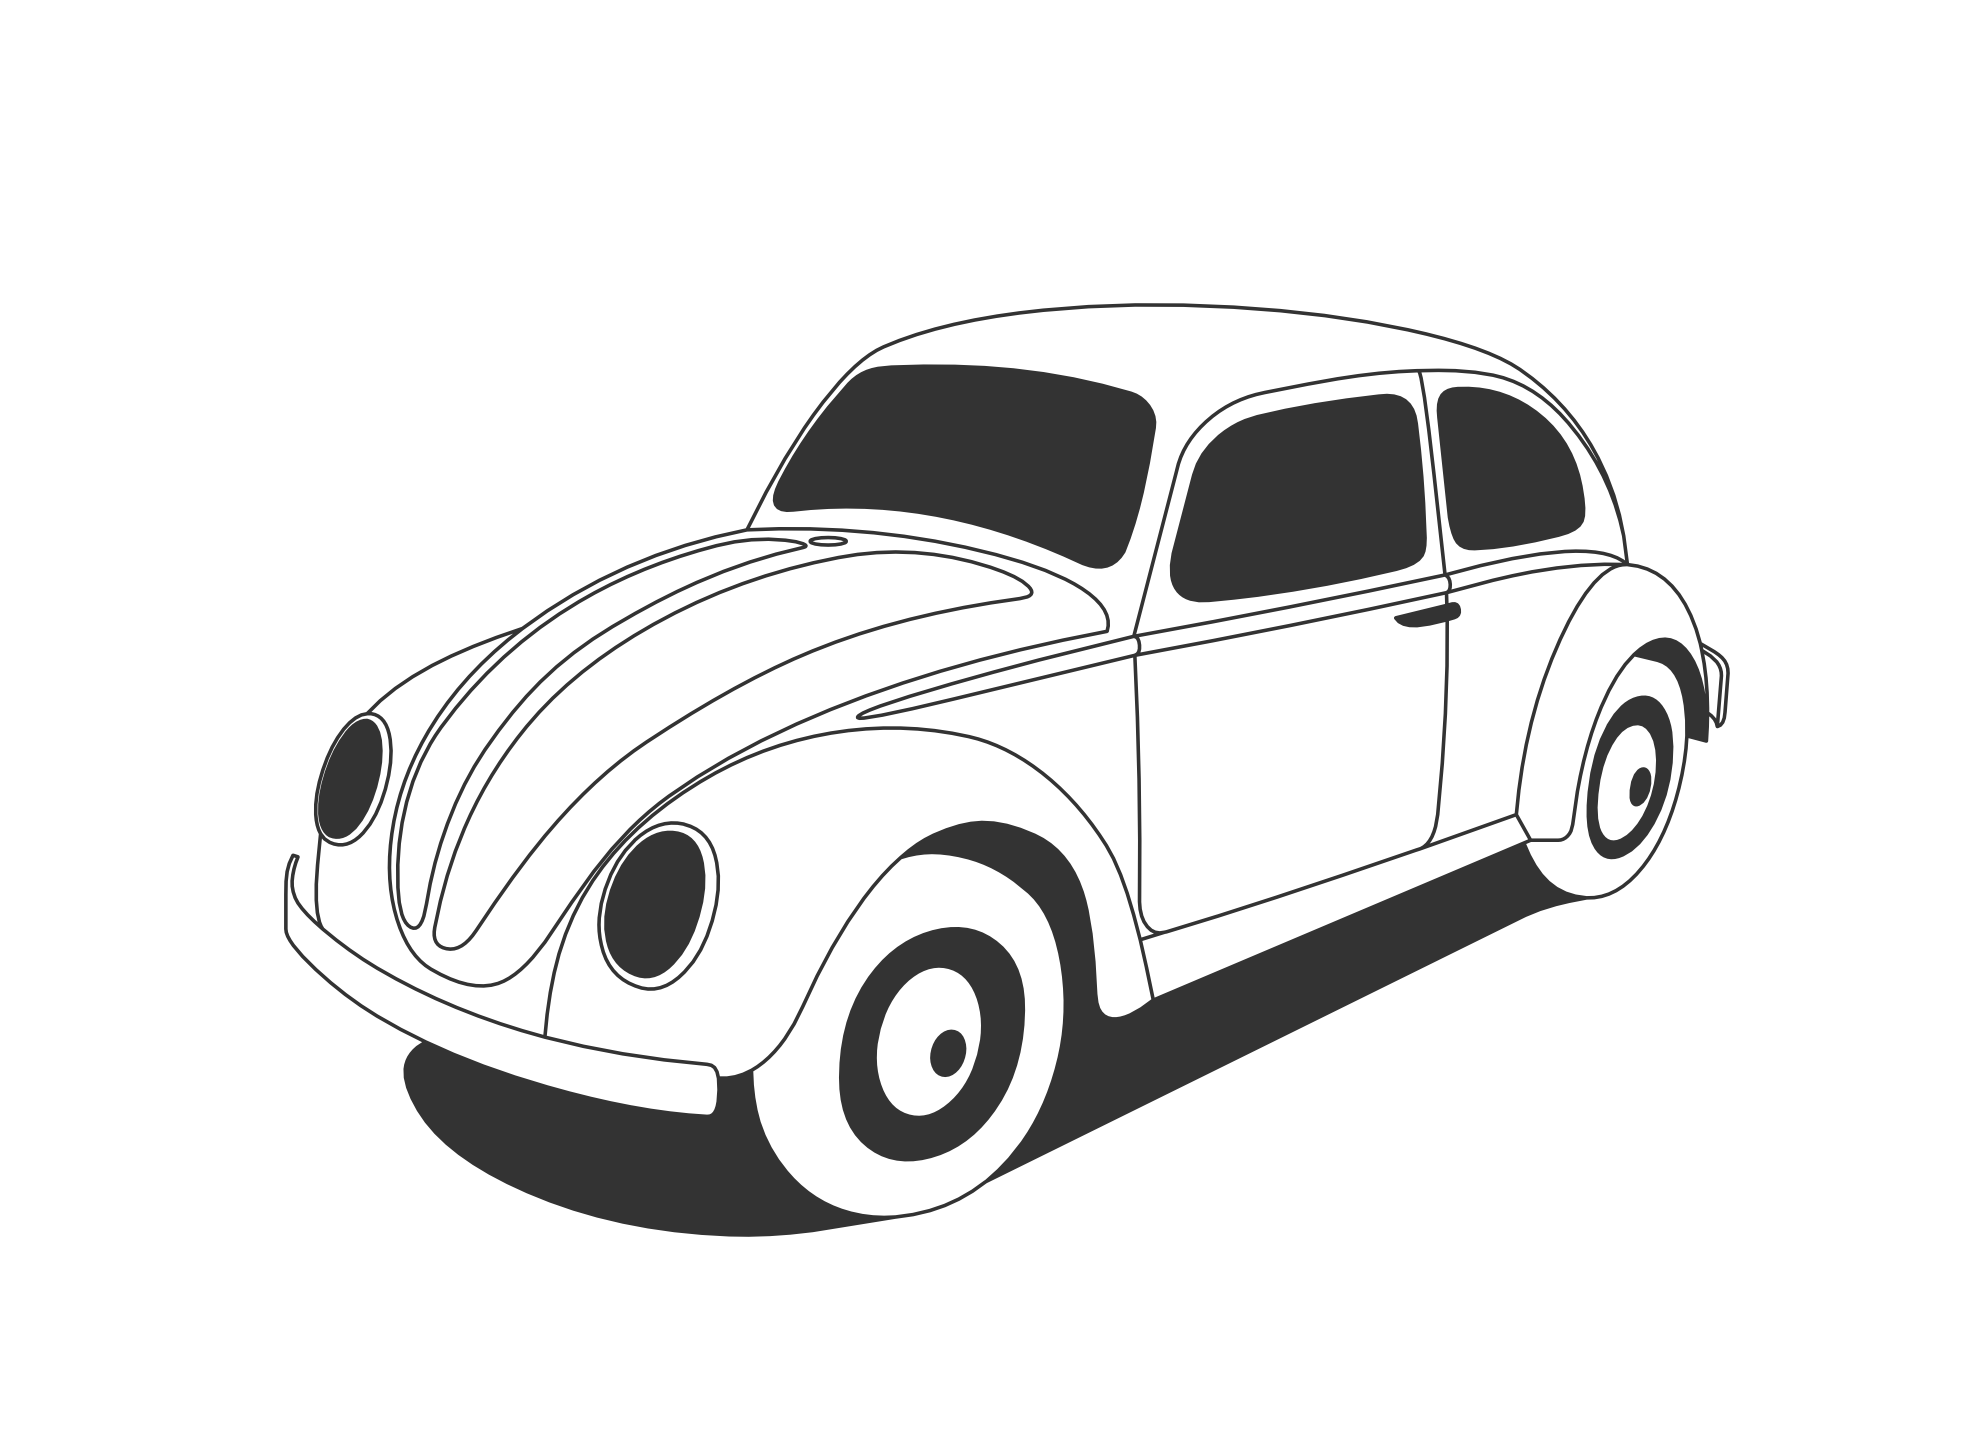 Car  black and white retro car clipart black and white clipartfest